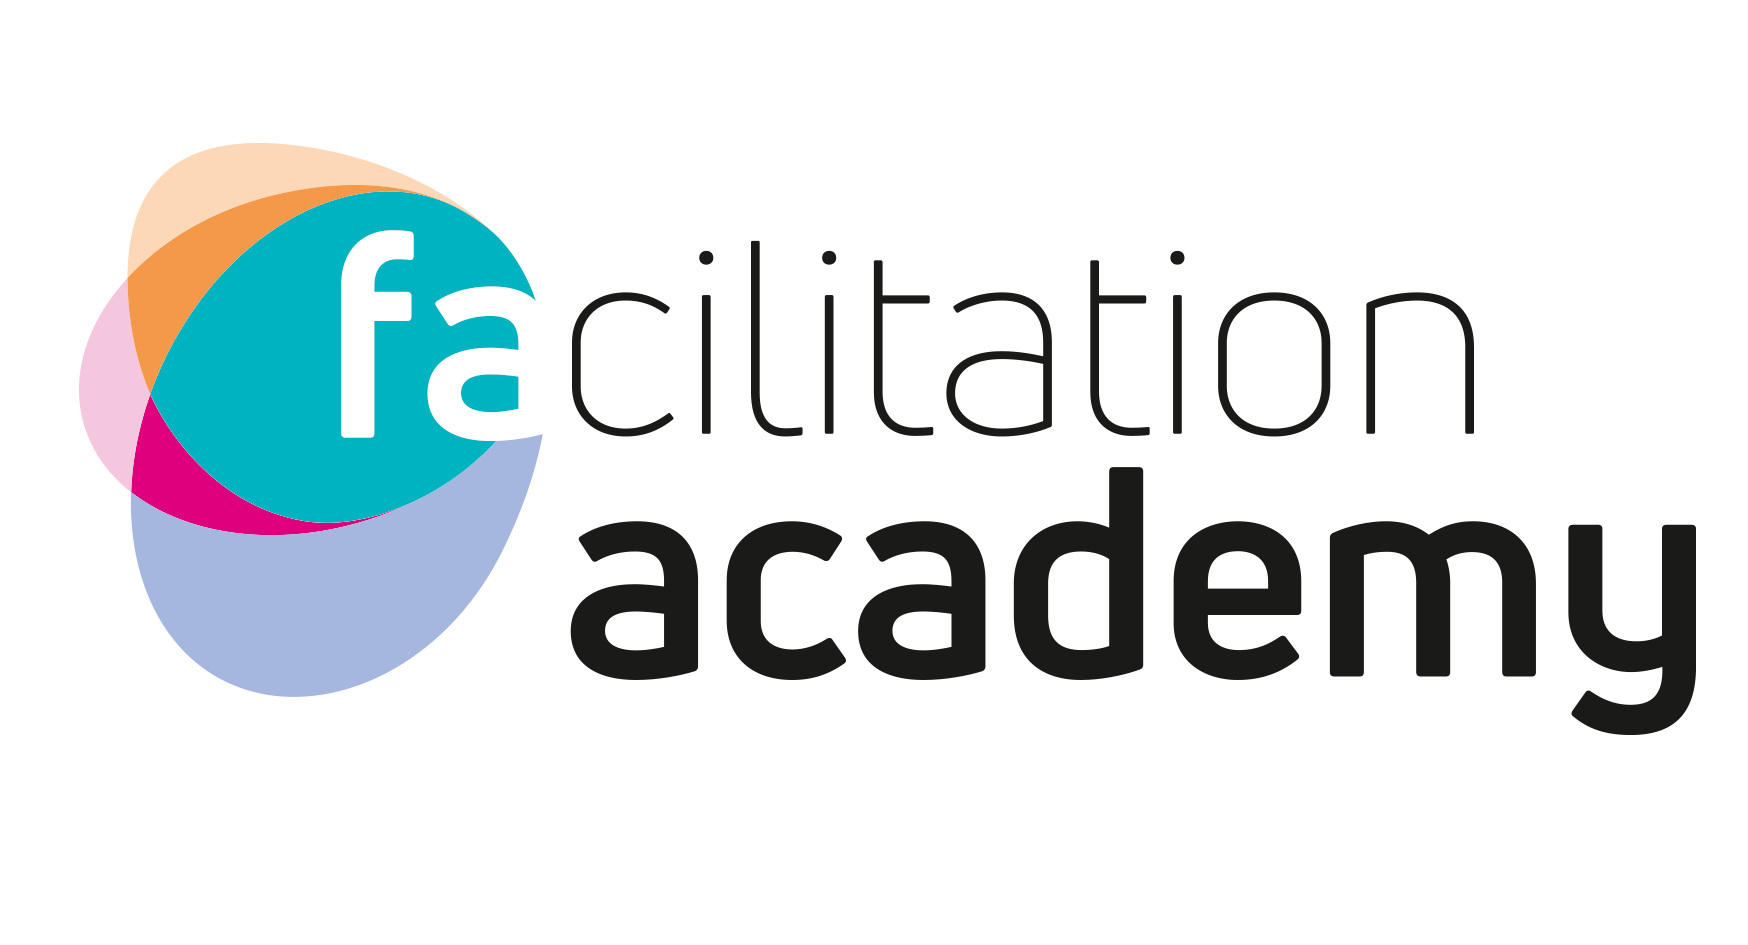 Facilitation Academy